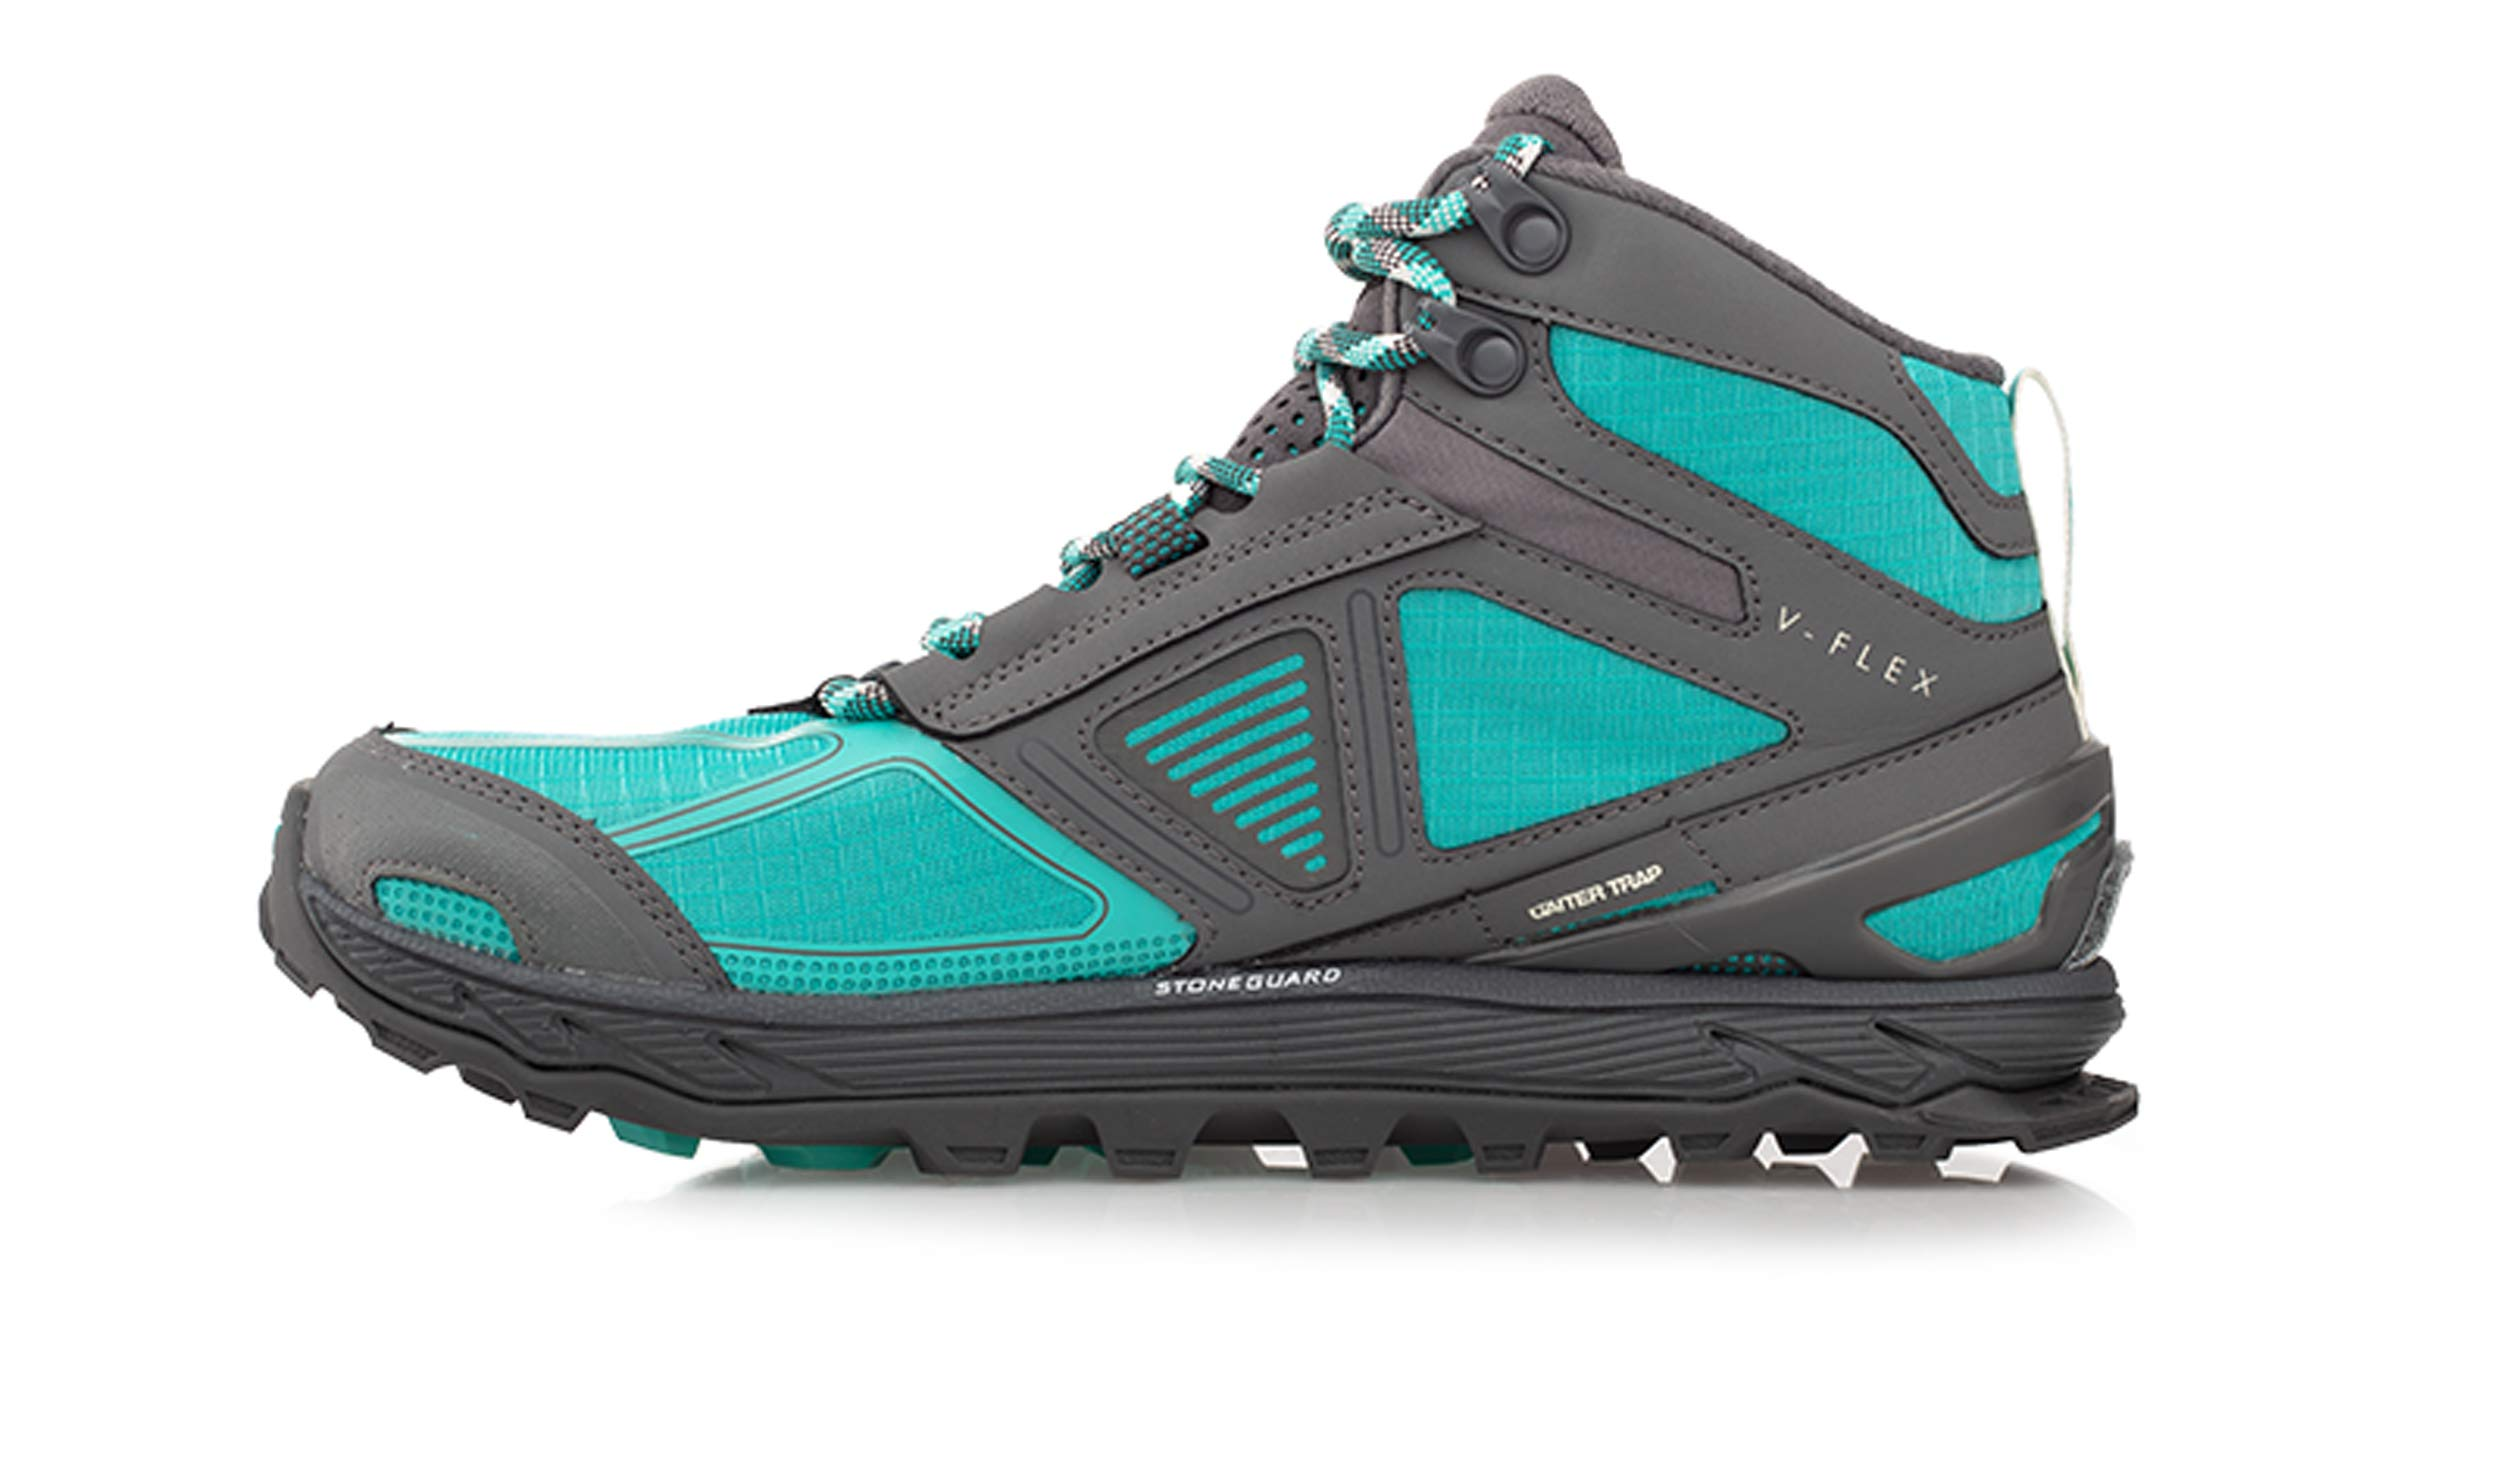 Altra Women's Lone Peak 4 Mid Mesh Trail Running Shoe, Teal/Gray - 6 B(M) US by Altra (Image #2)